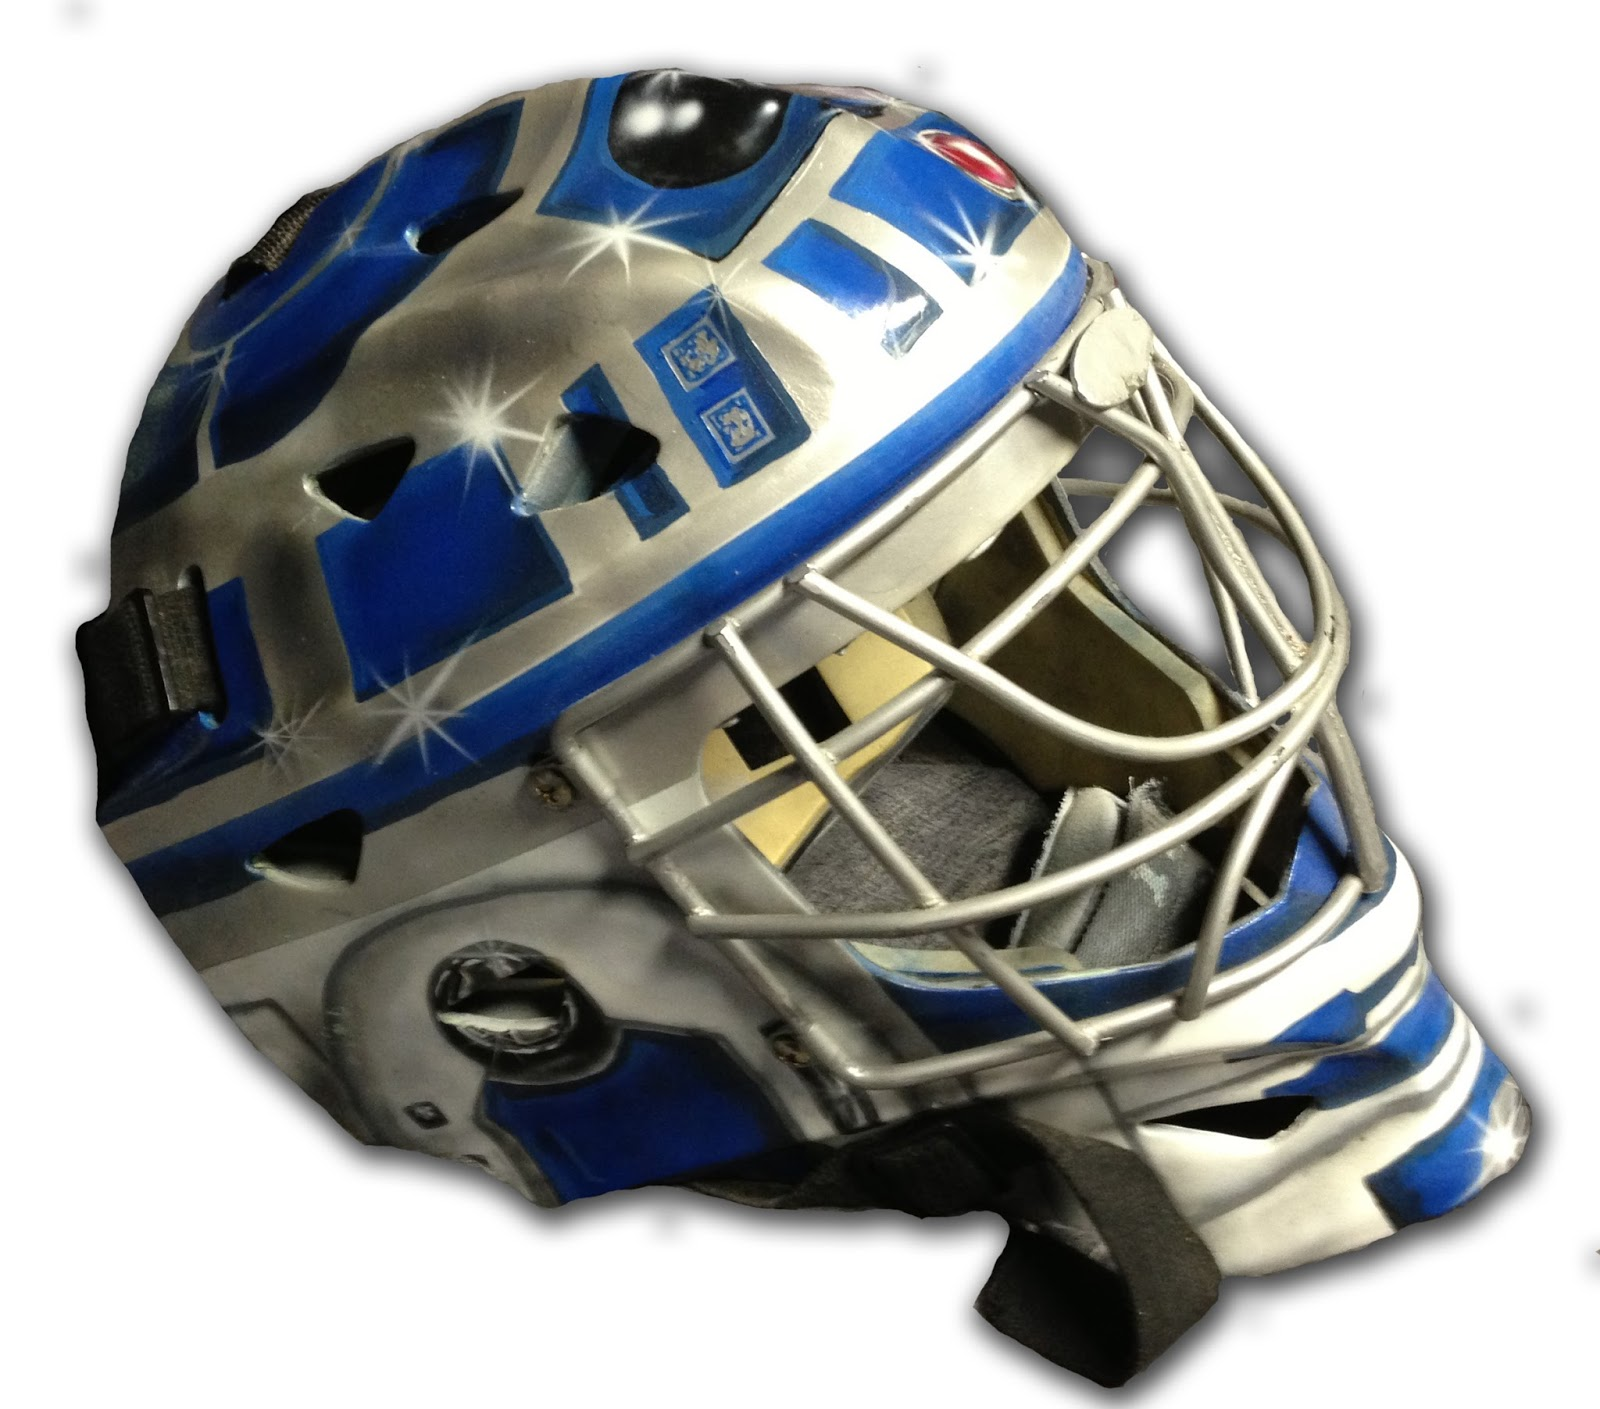 Hockey in art r2 d2 star wars goalie mask r2 d2 star wars goalie mask maxwellsz